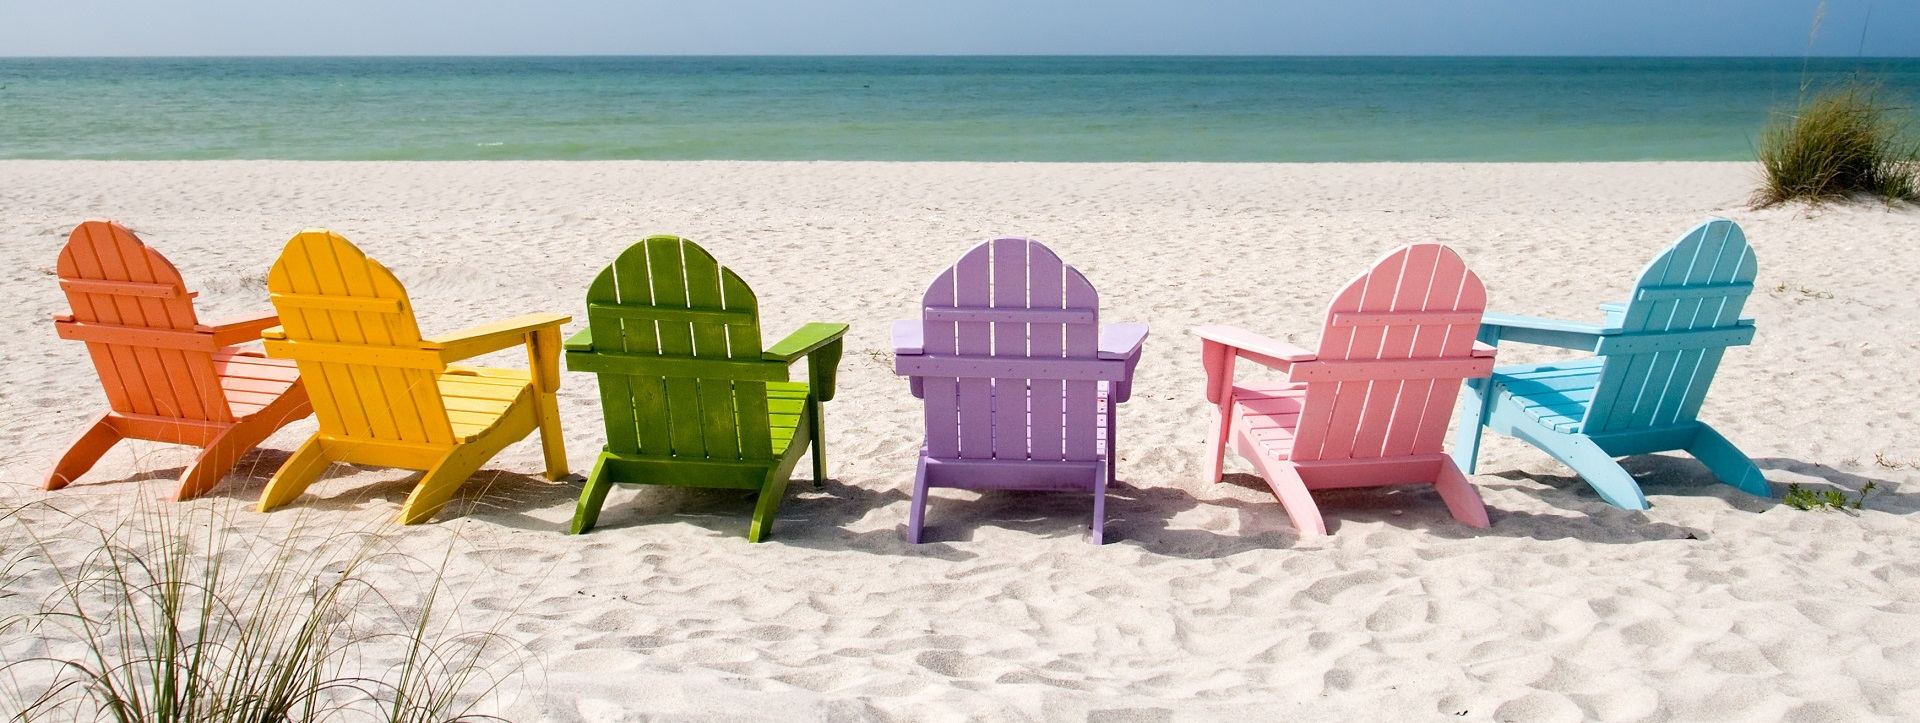 Web chairs on the beach1